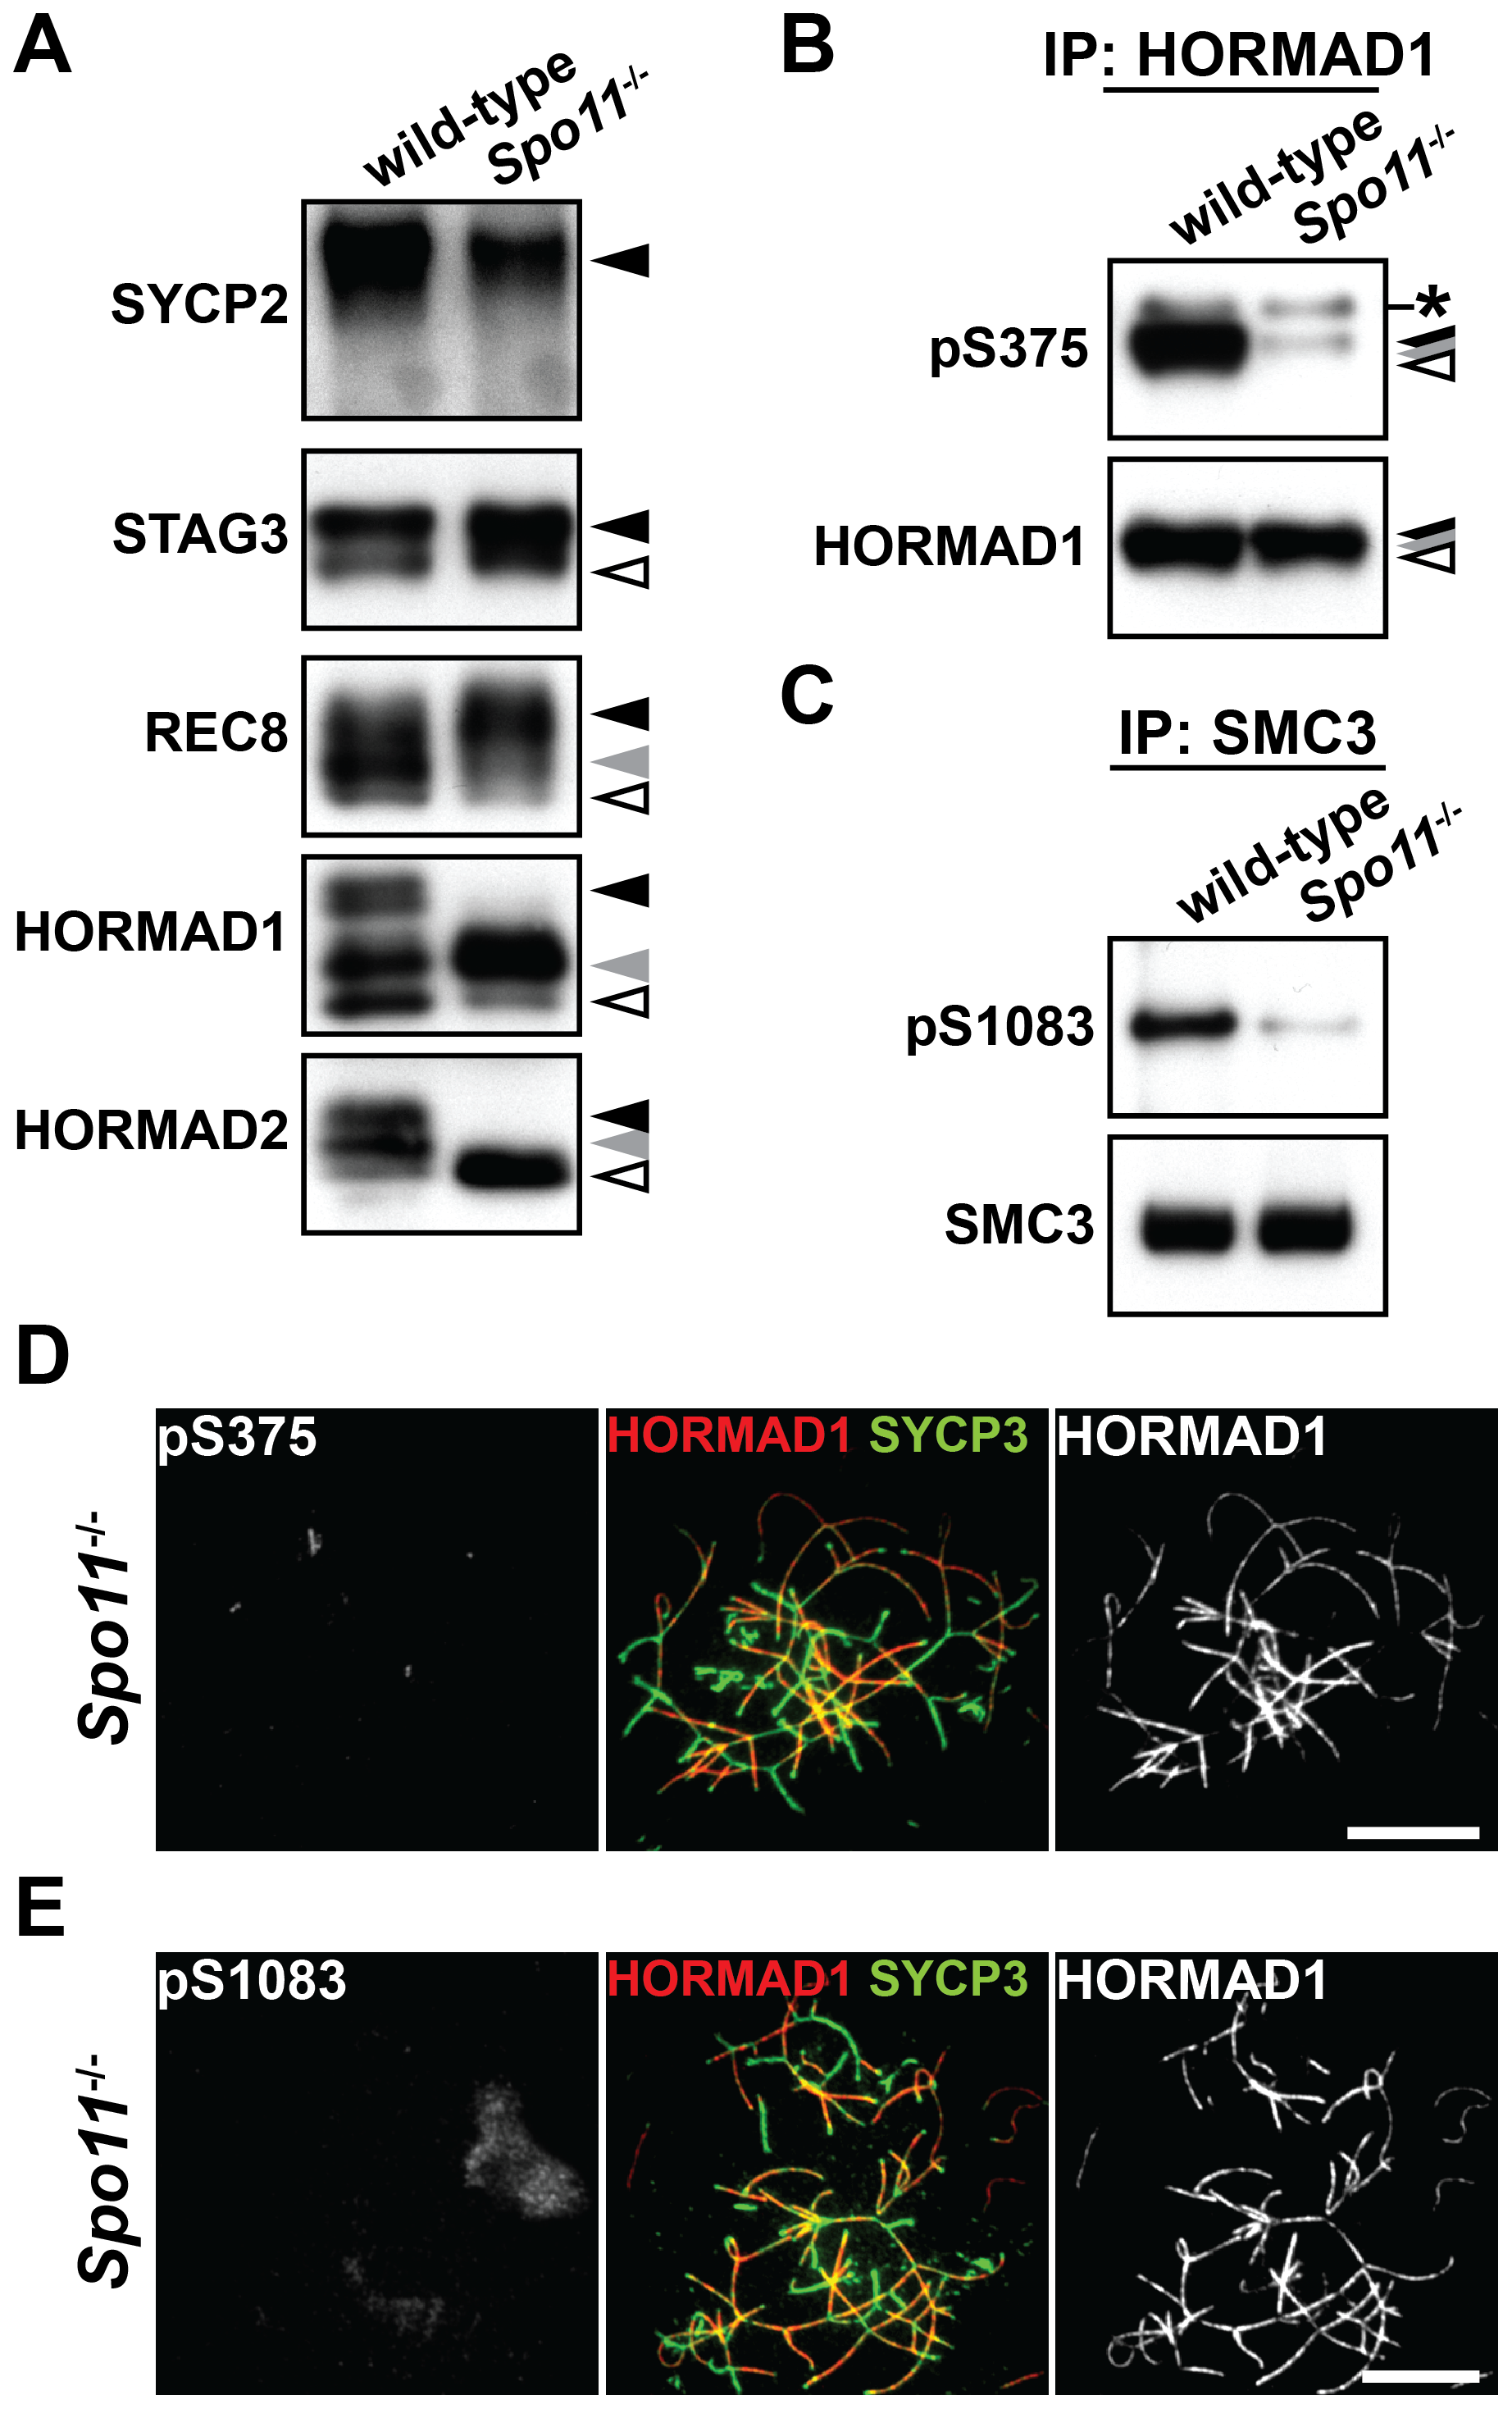 Phosphorylation of HORMAD1, HORMAD2, and SMC3 is highly dependent on SPO11.